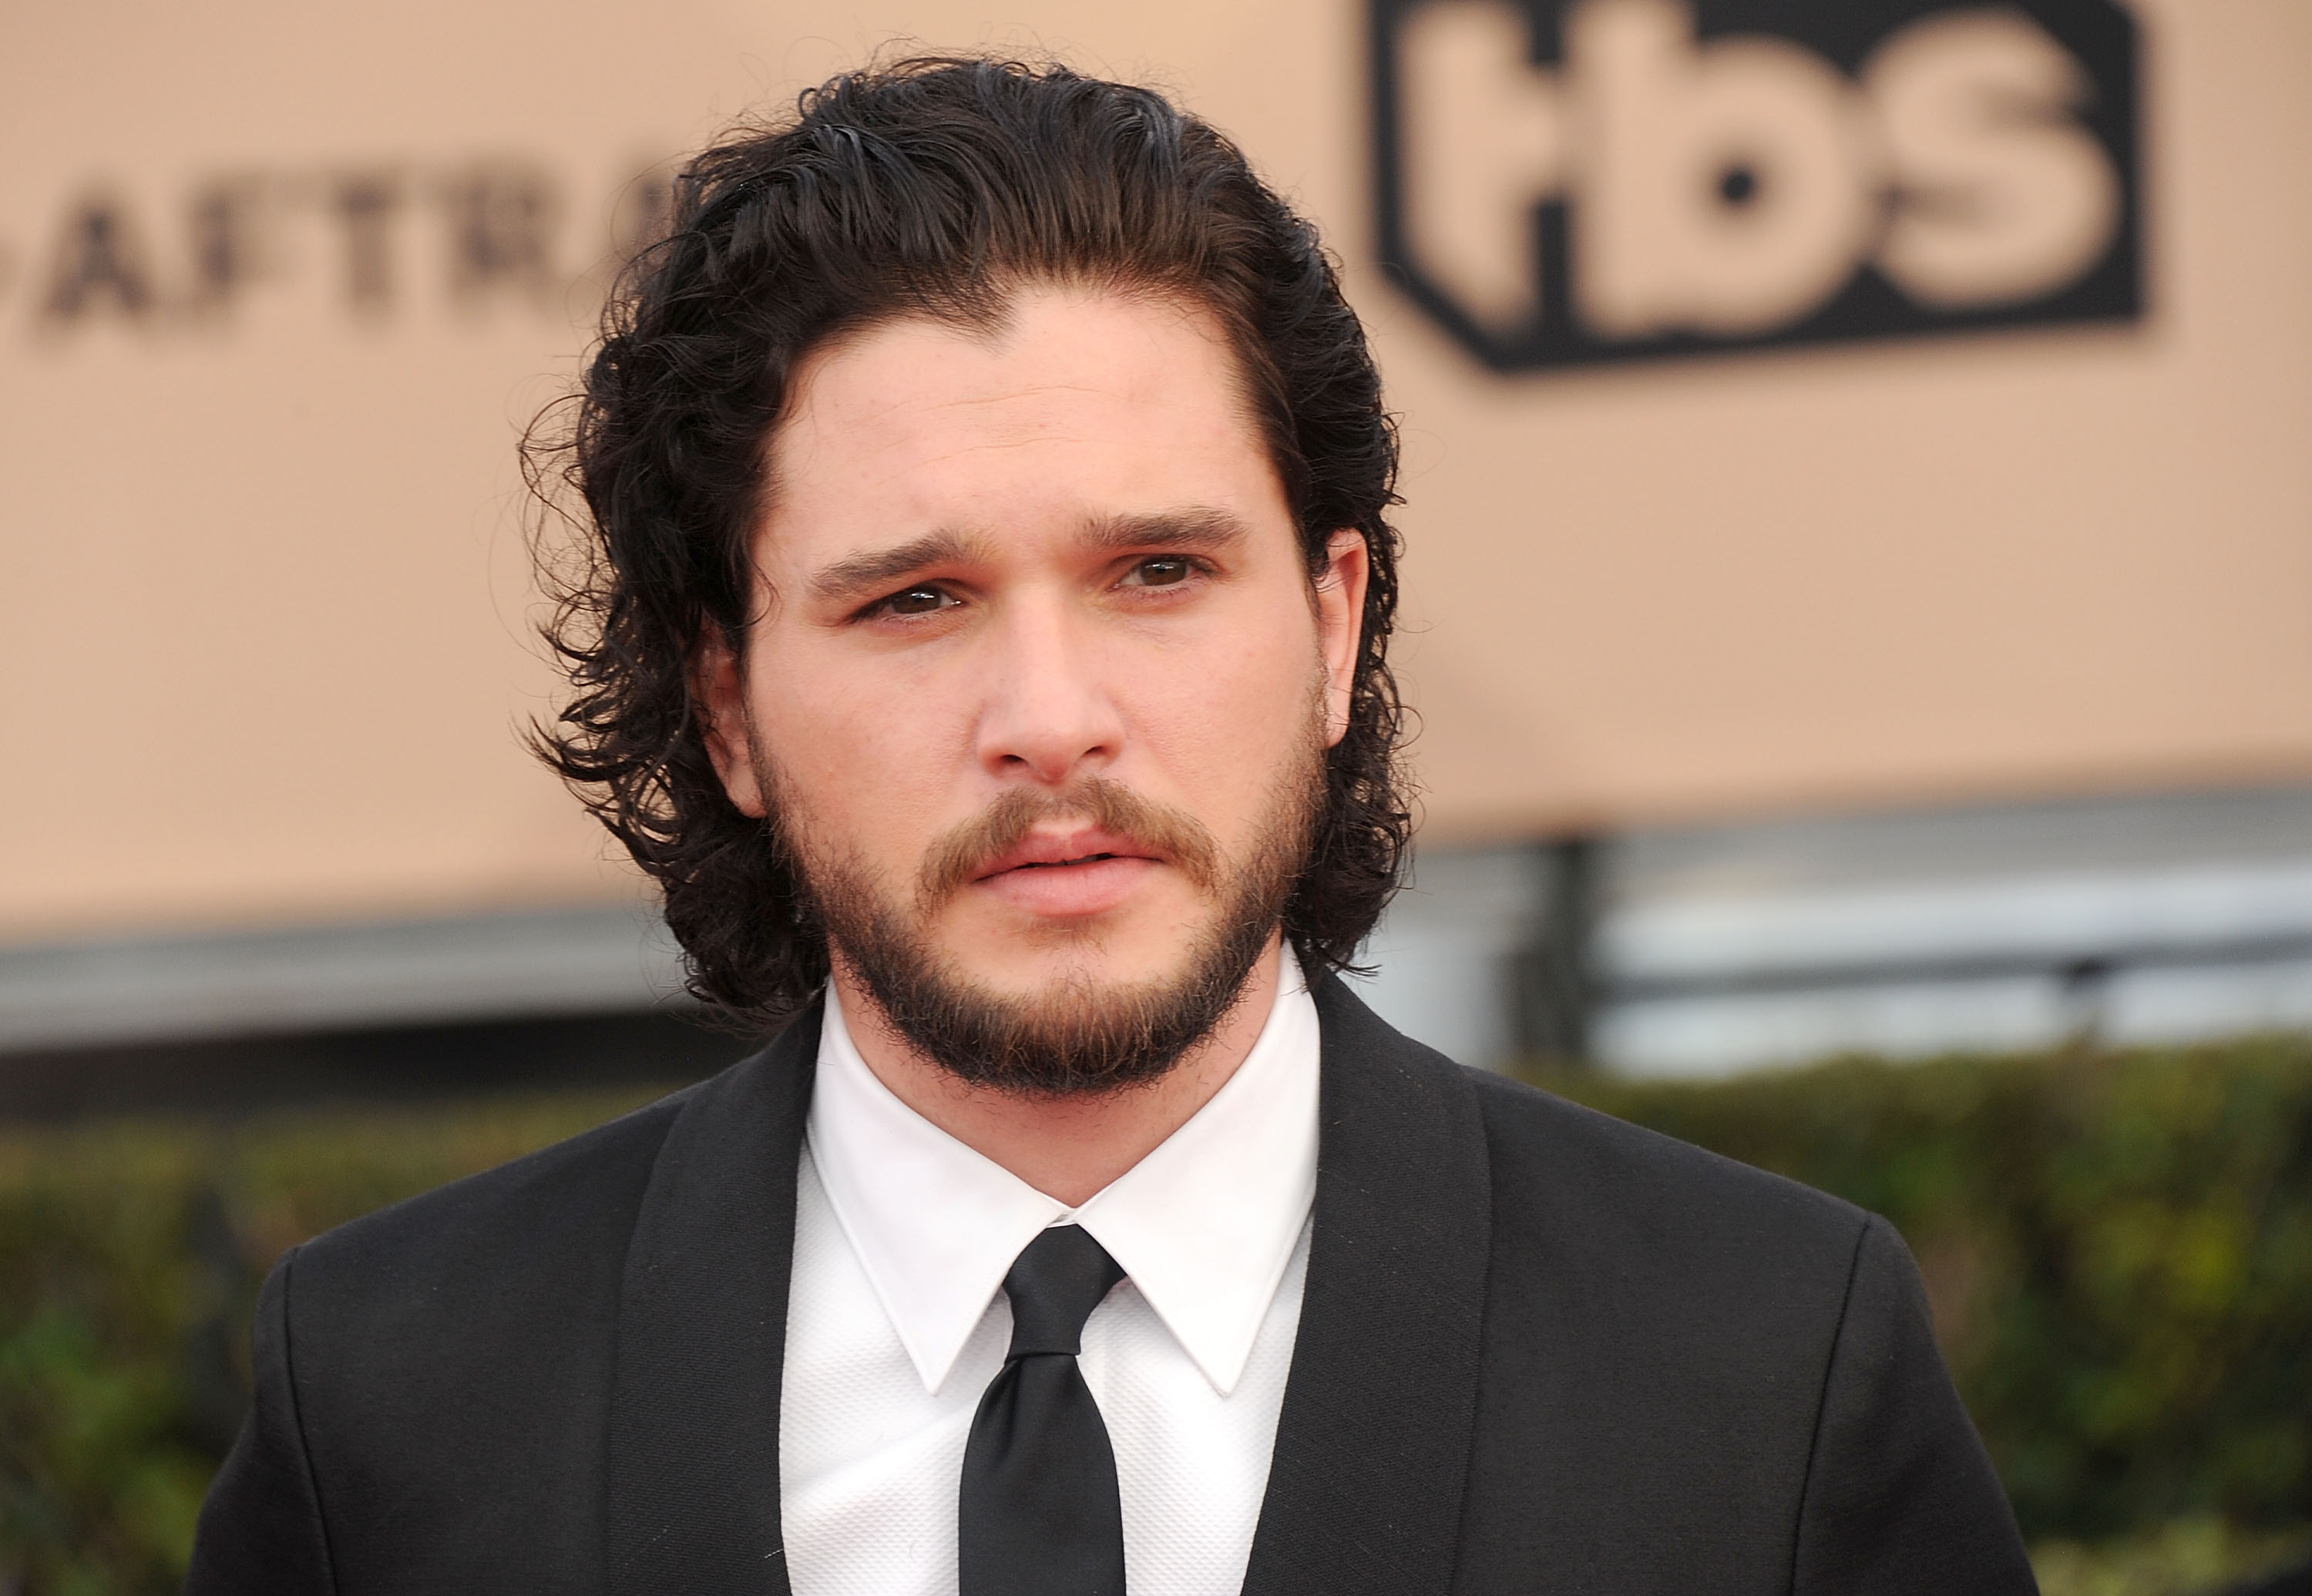 Actor Kit Harington arrives at the 22nd Annual Screen Actors Guild Awards at The Shrine Auditorium on January 30, 2016 in Los Angeles, California.